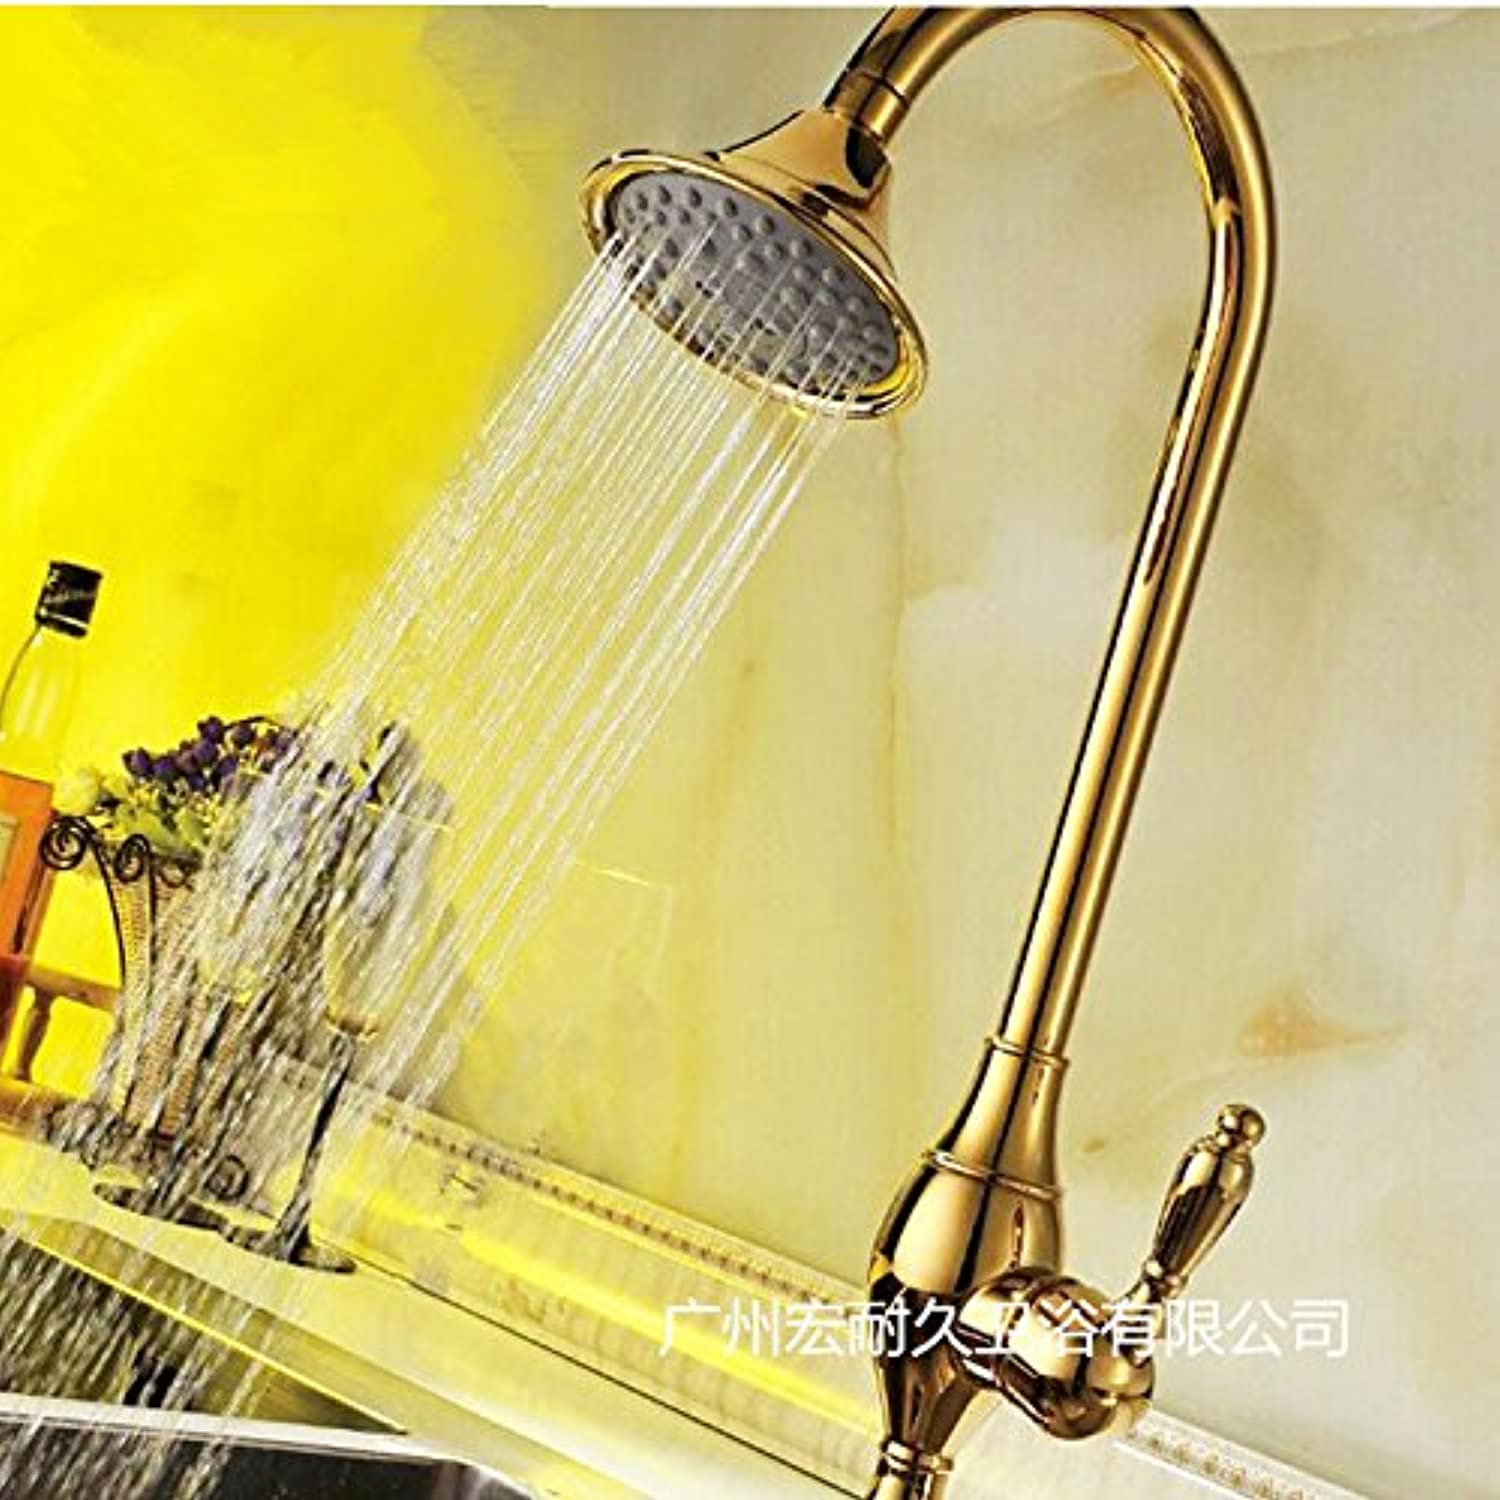 Maifeini The golden Tap _ Multifunction Kitchen Faucet And Sink Faucet Tap redary Vegetable Washing Basin,- Hdgcb5458 Hd